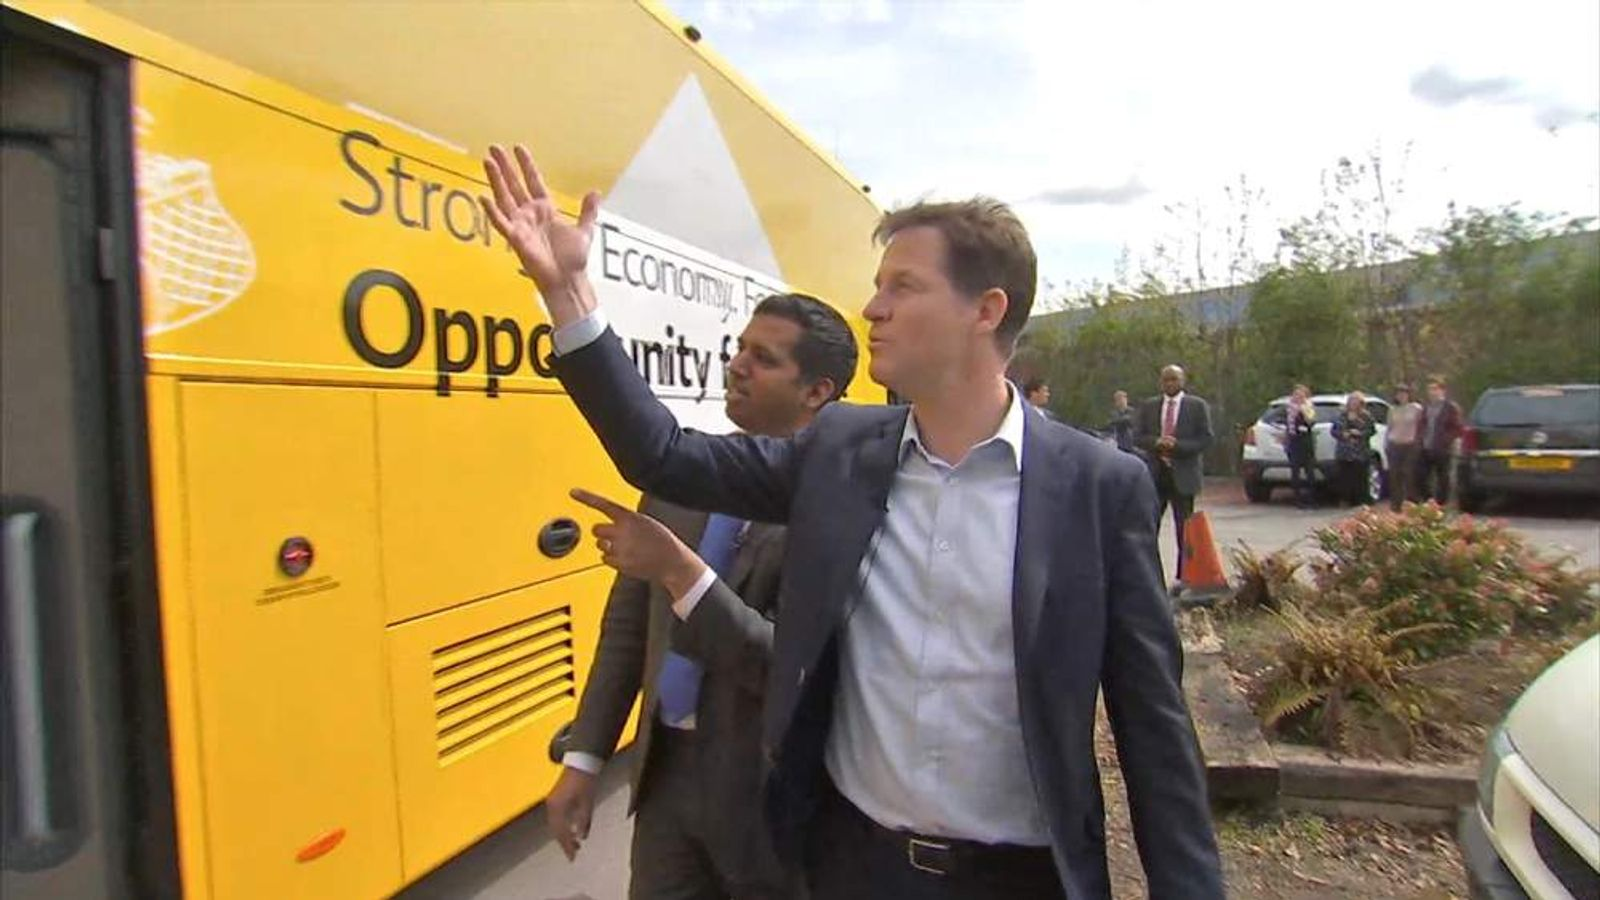 Clegg And The Lib Dem Bus